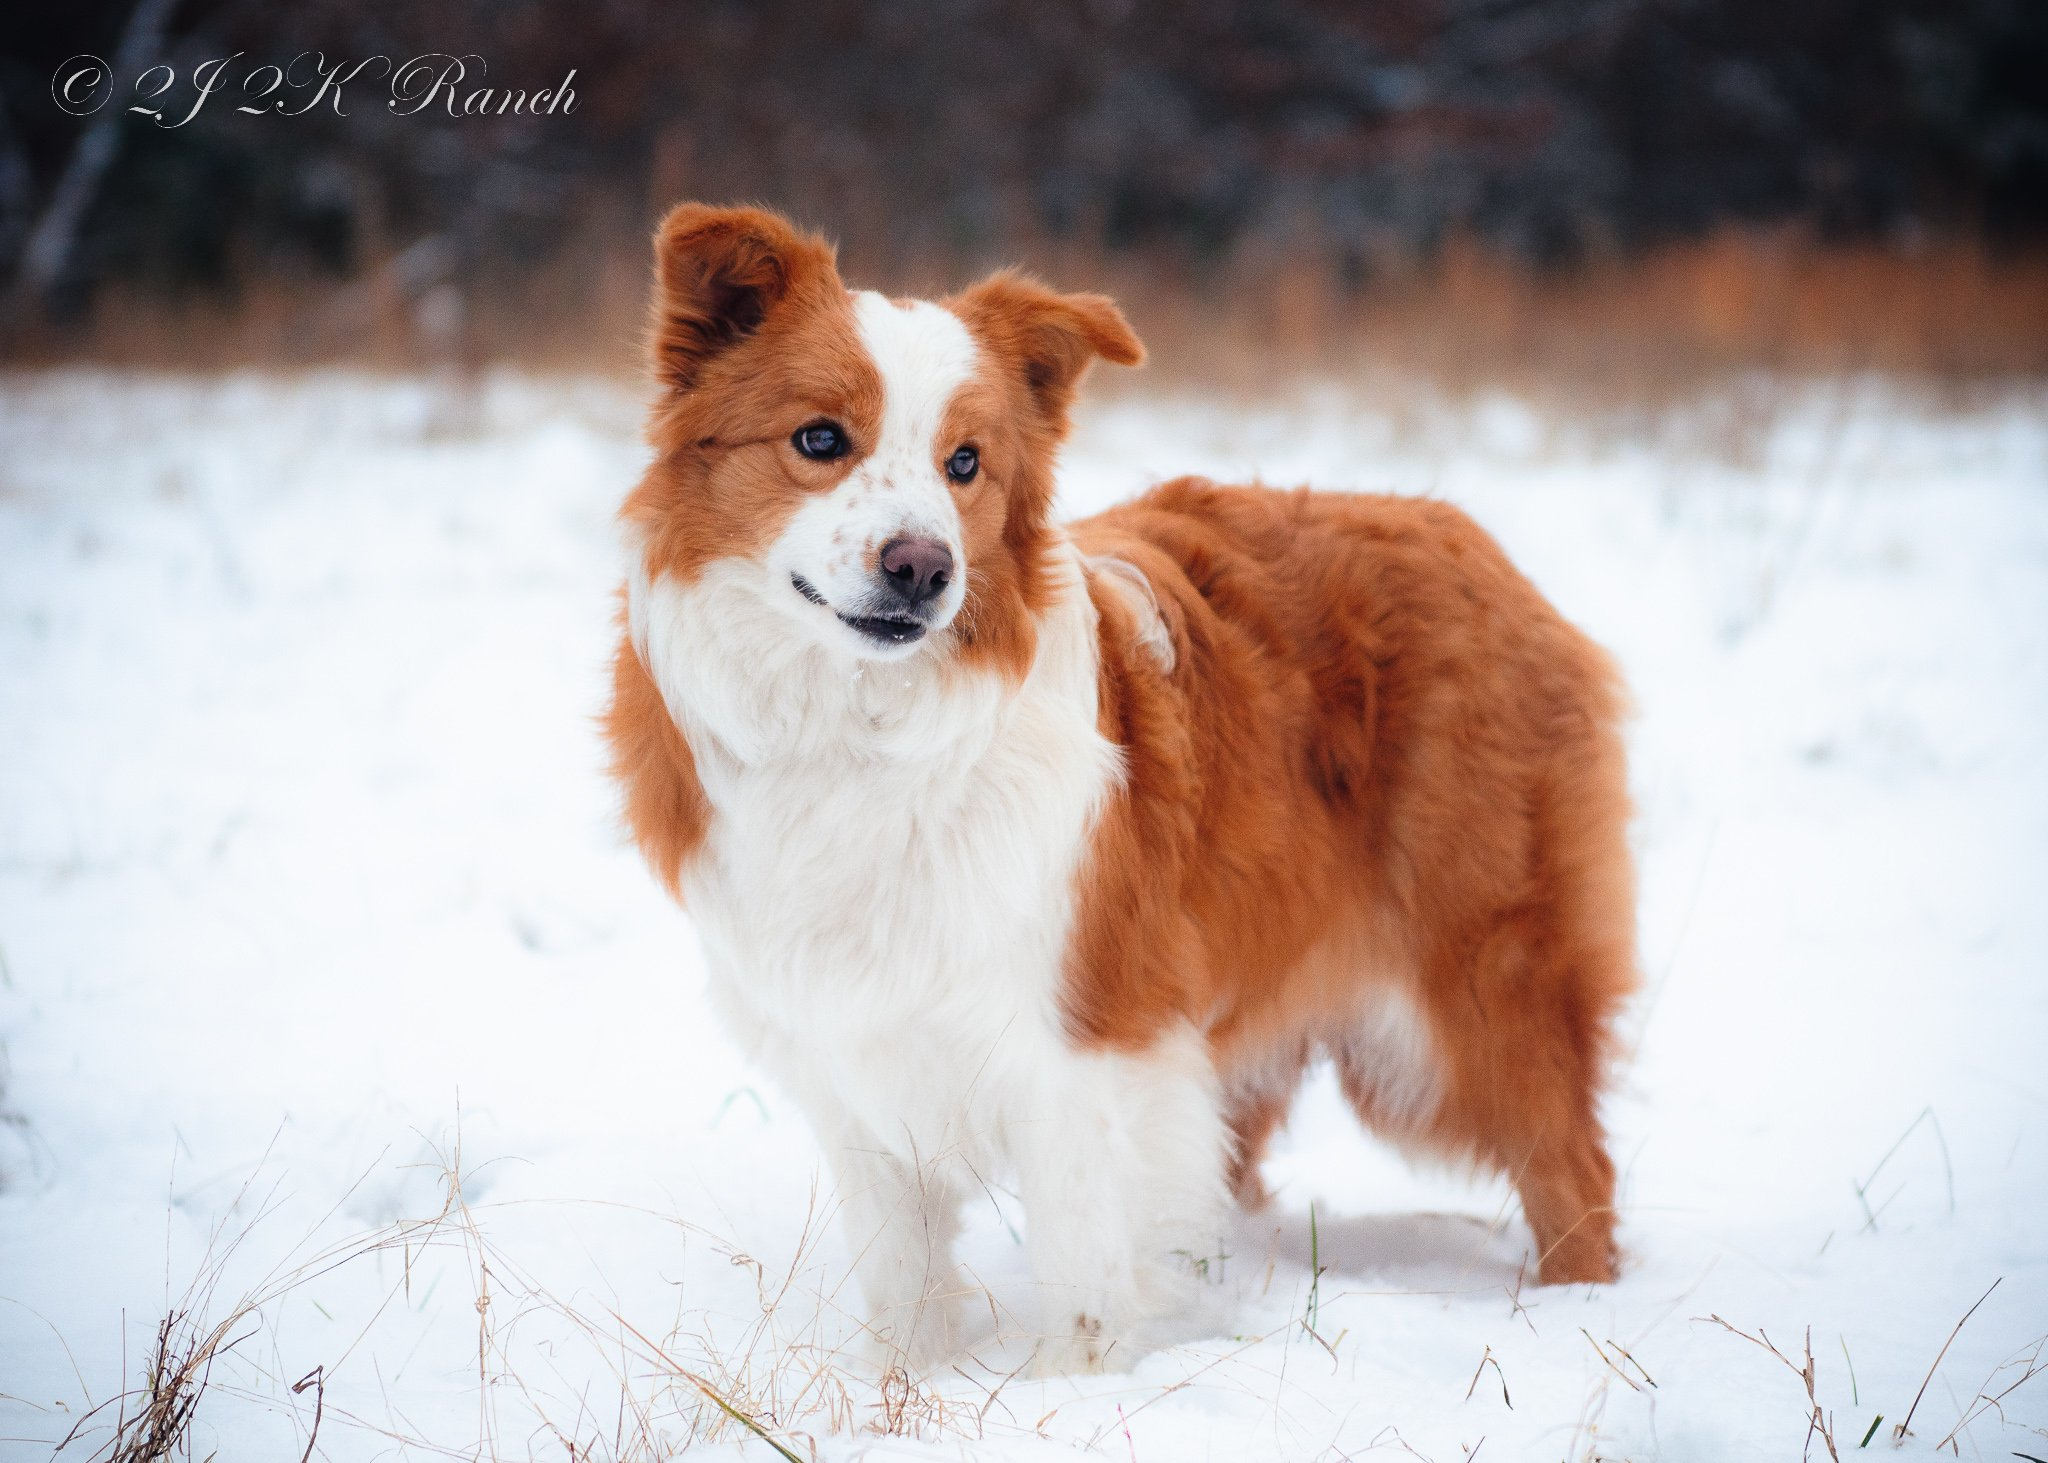 A gold and white Border Collie standing in the snow.